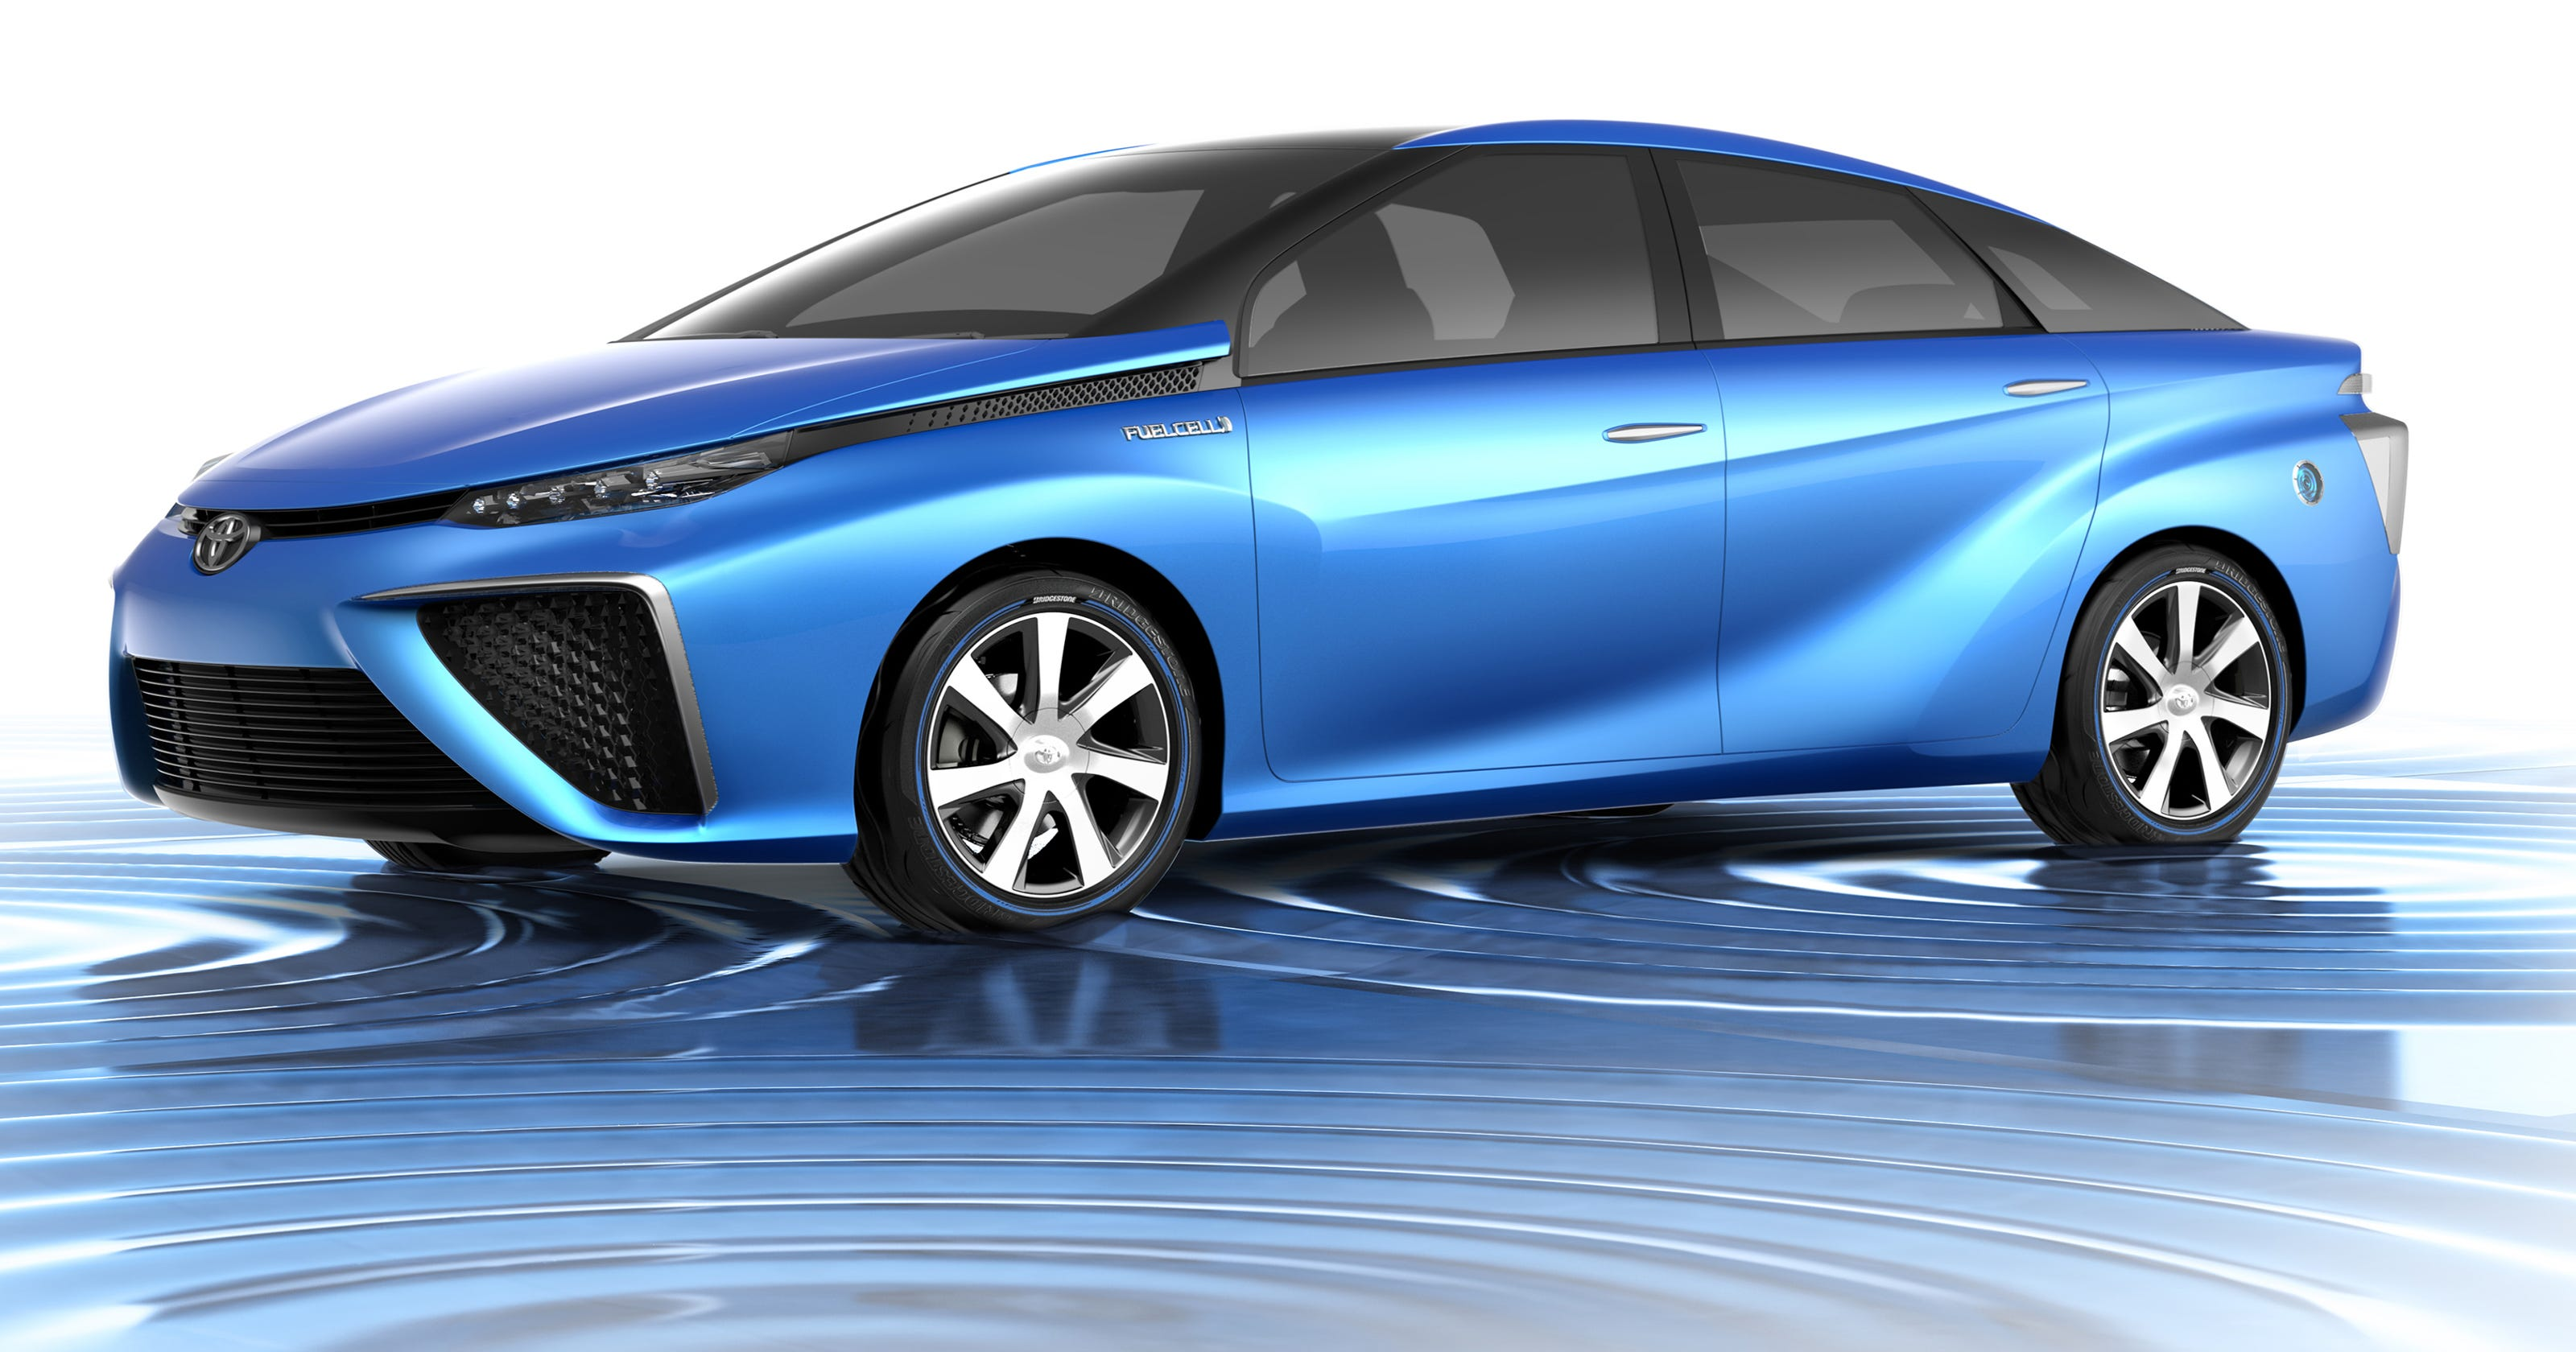 Hydrogen Cars: Toyota: Hydrogen Cars Have Edge On Electric Cars